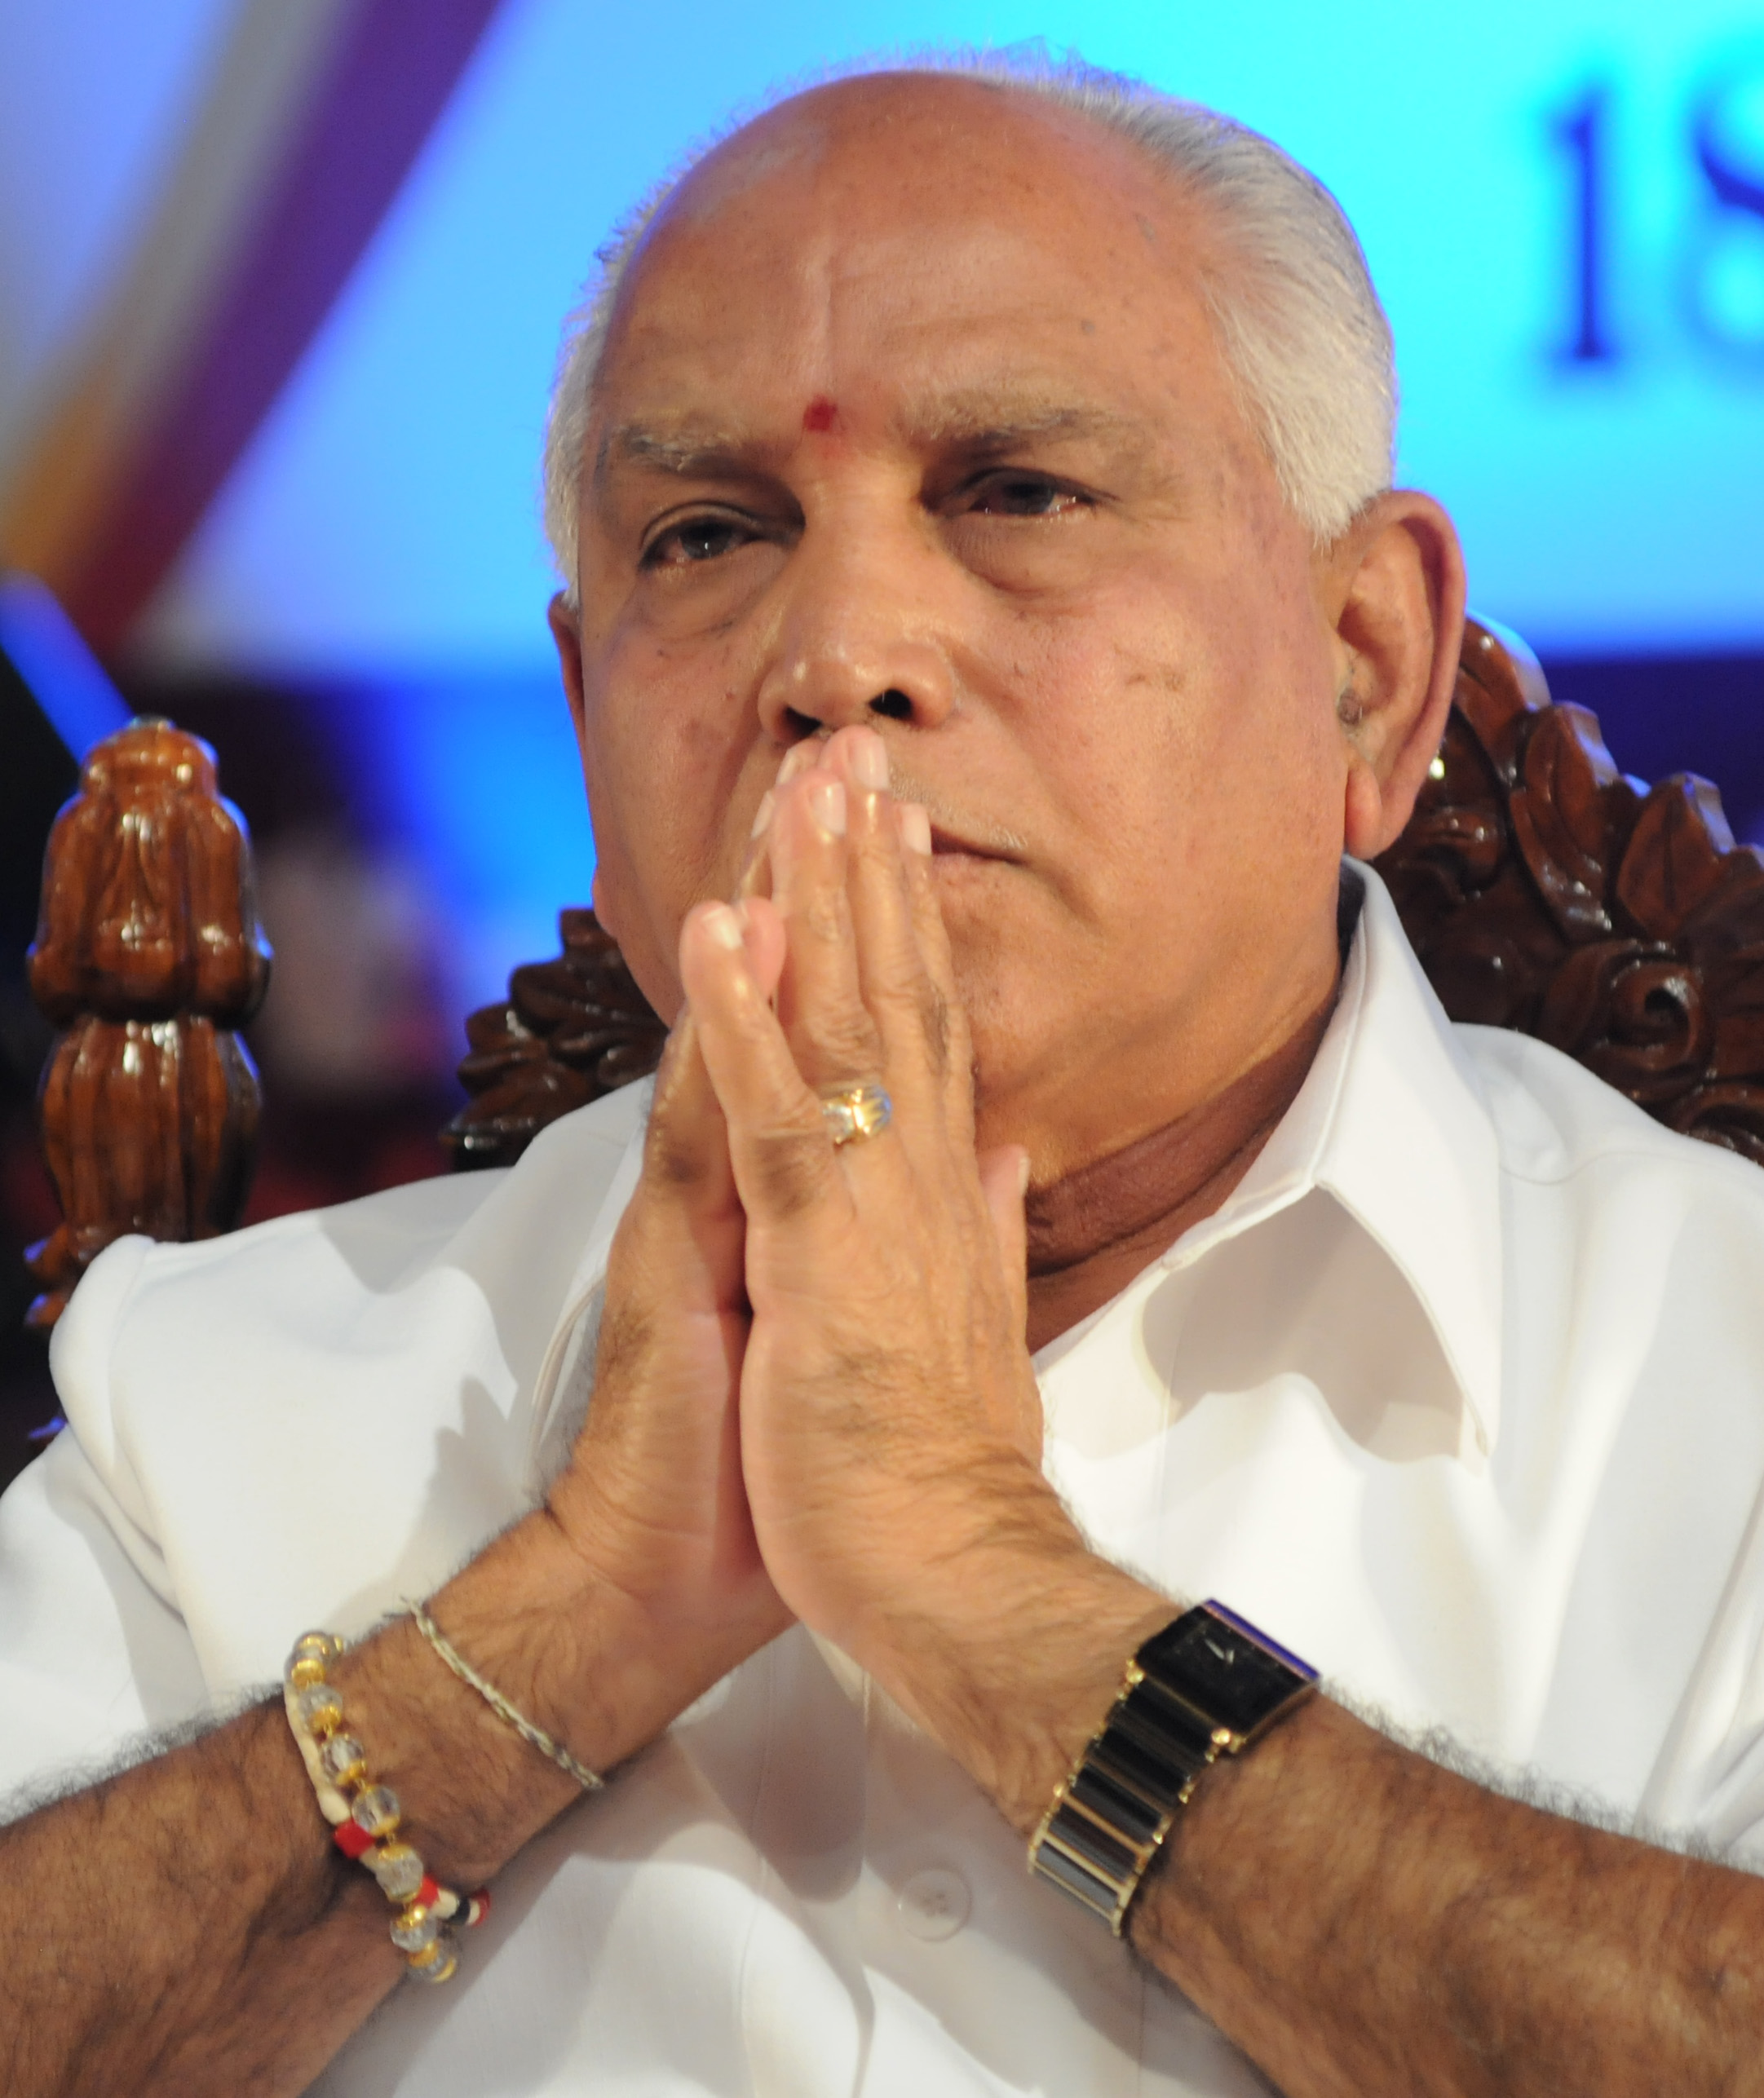 Karnataka CM BS Yediyurappa tests positive for Covid-19